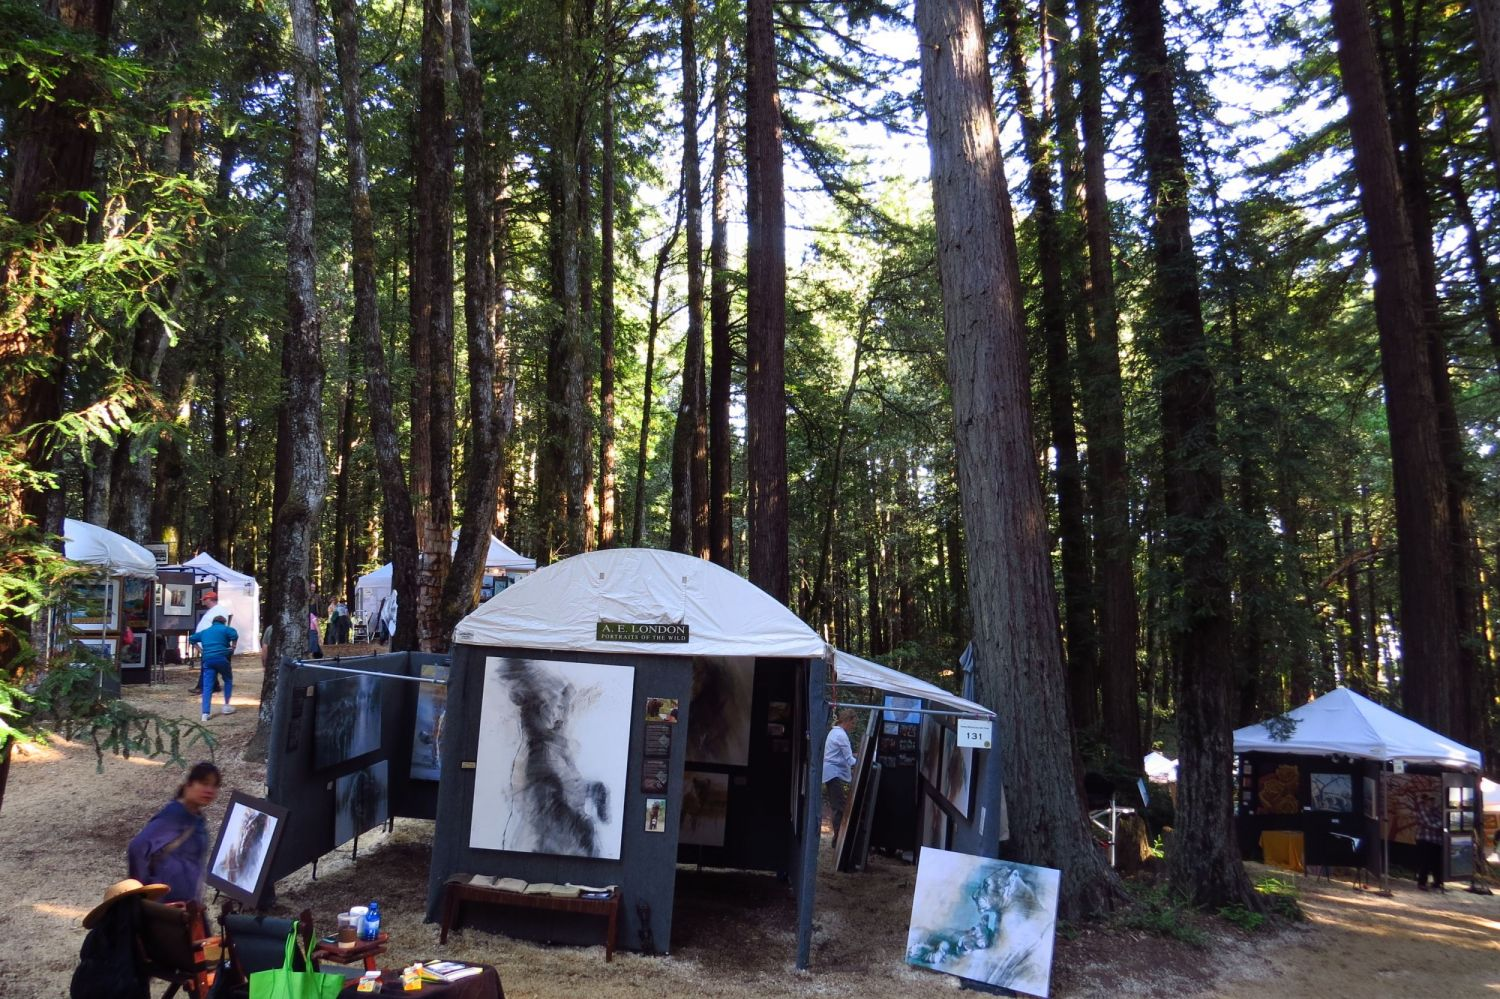 The Kings Mountain show was beautiful- among those towering redwoods, you almost feel like you're in a cathedral!